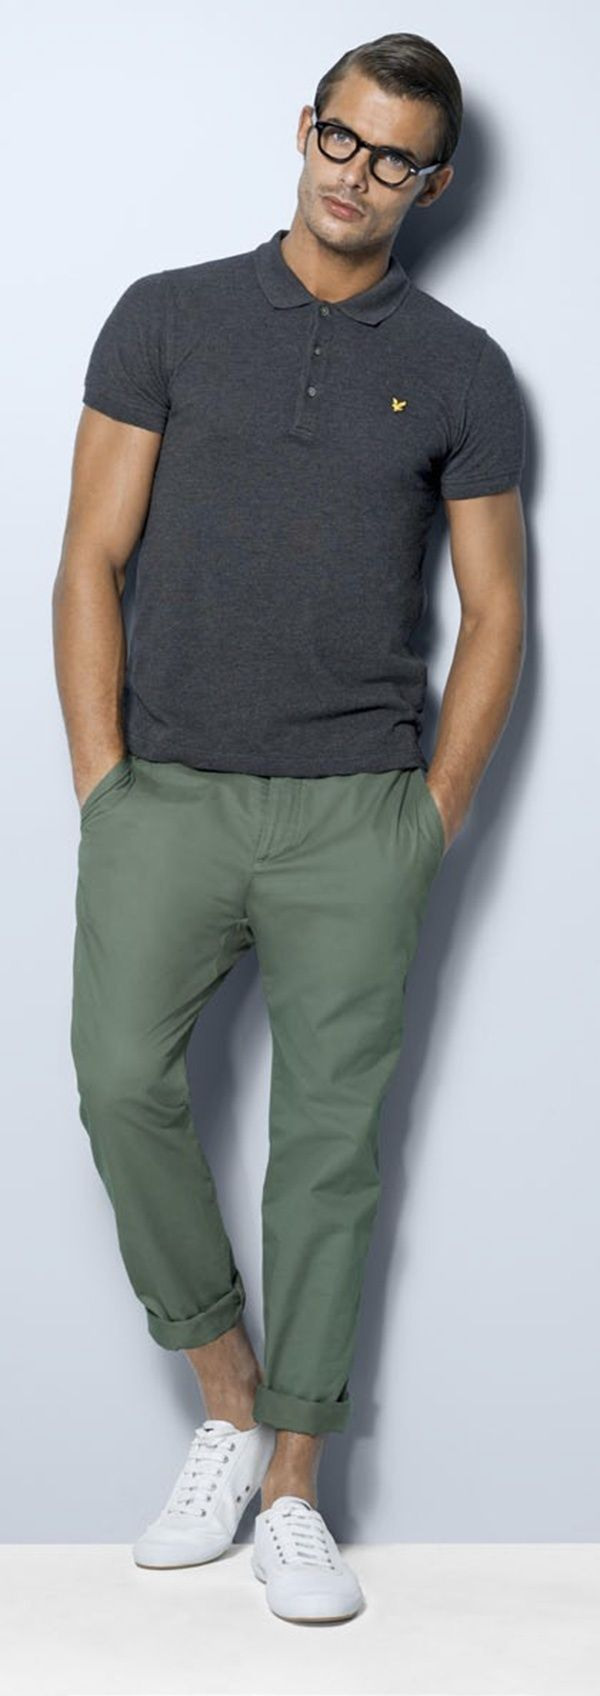 Black t shirt grey pants - A Dark Grey Polo And Olive Green Trousers Feel Perfectly Suited For Weekend Activities Of All